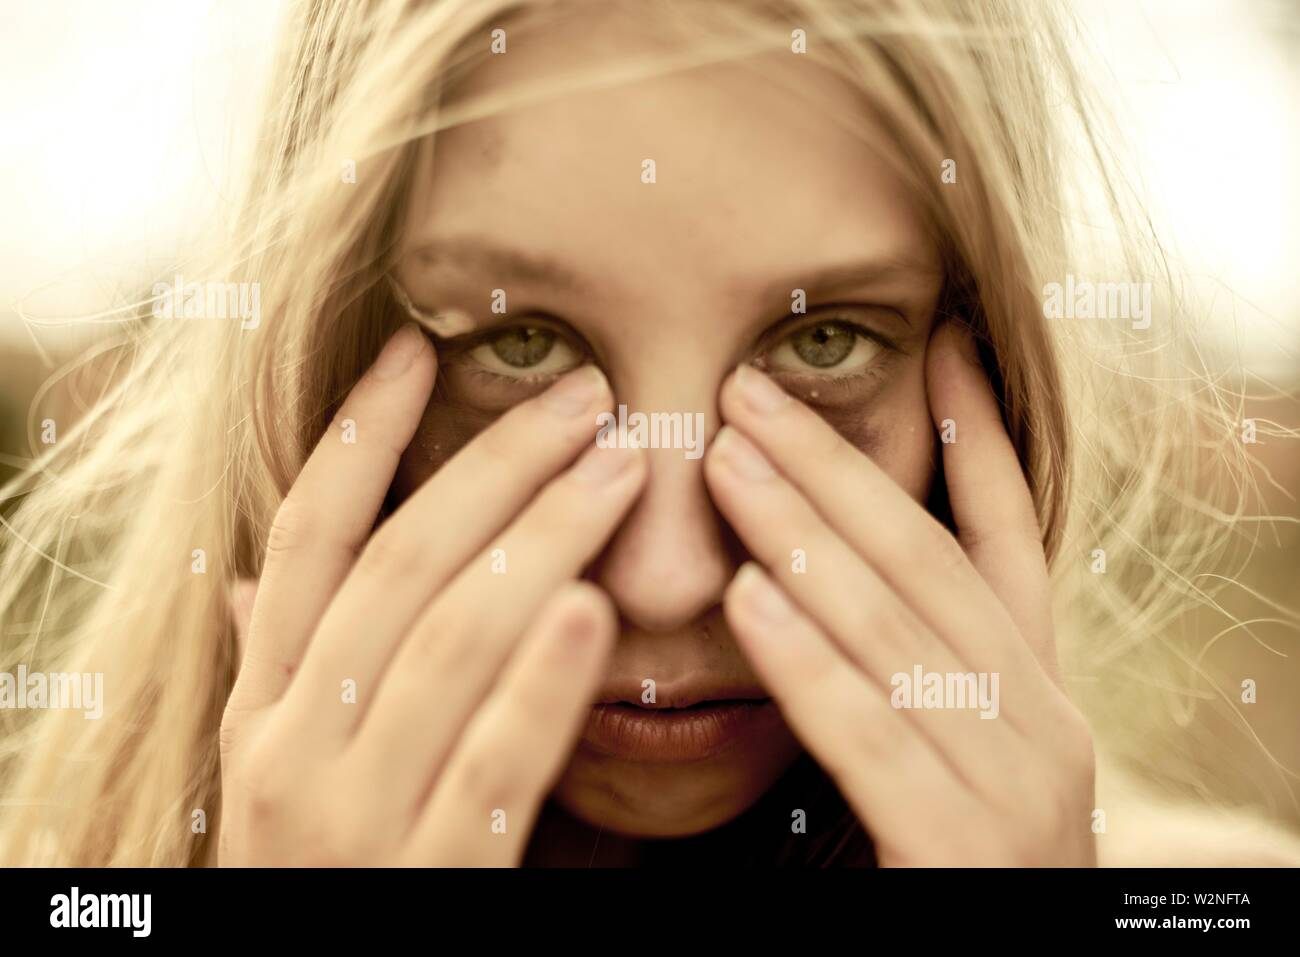 young defaced teenage woman with black eye, scars - Stock Image